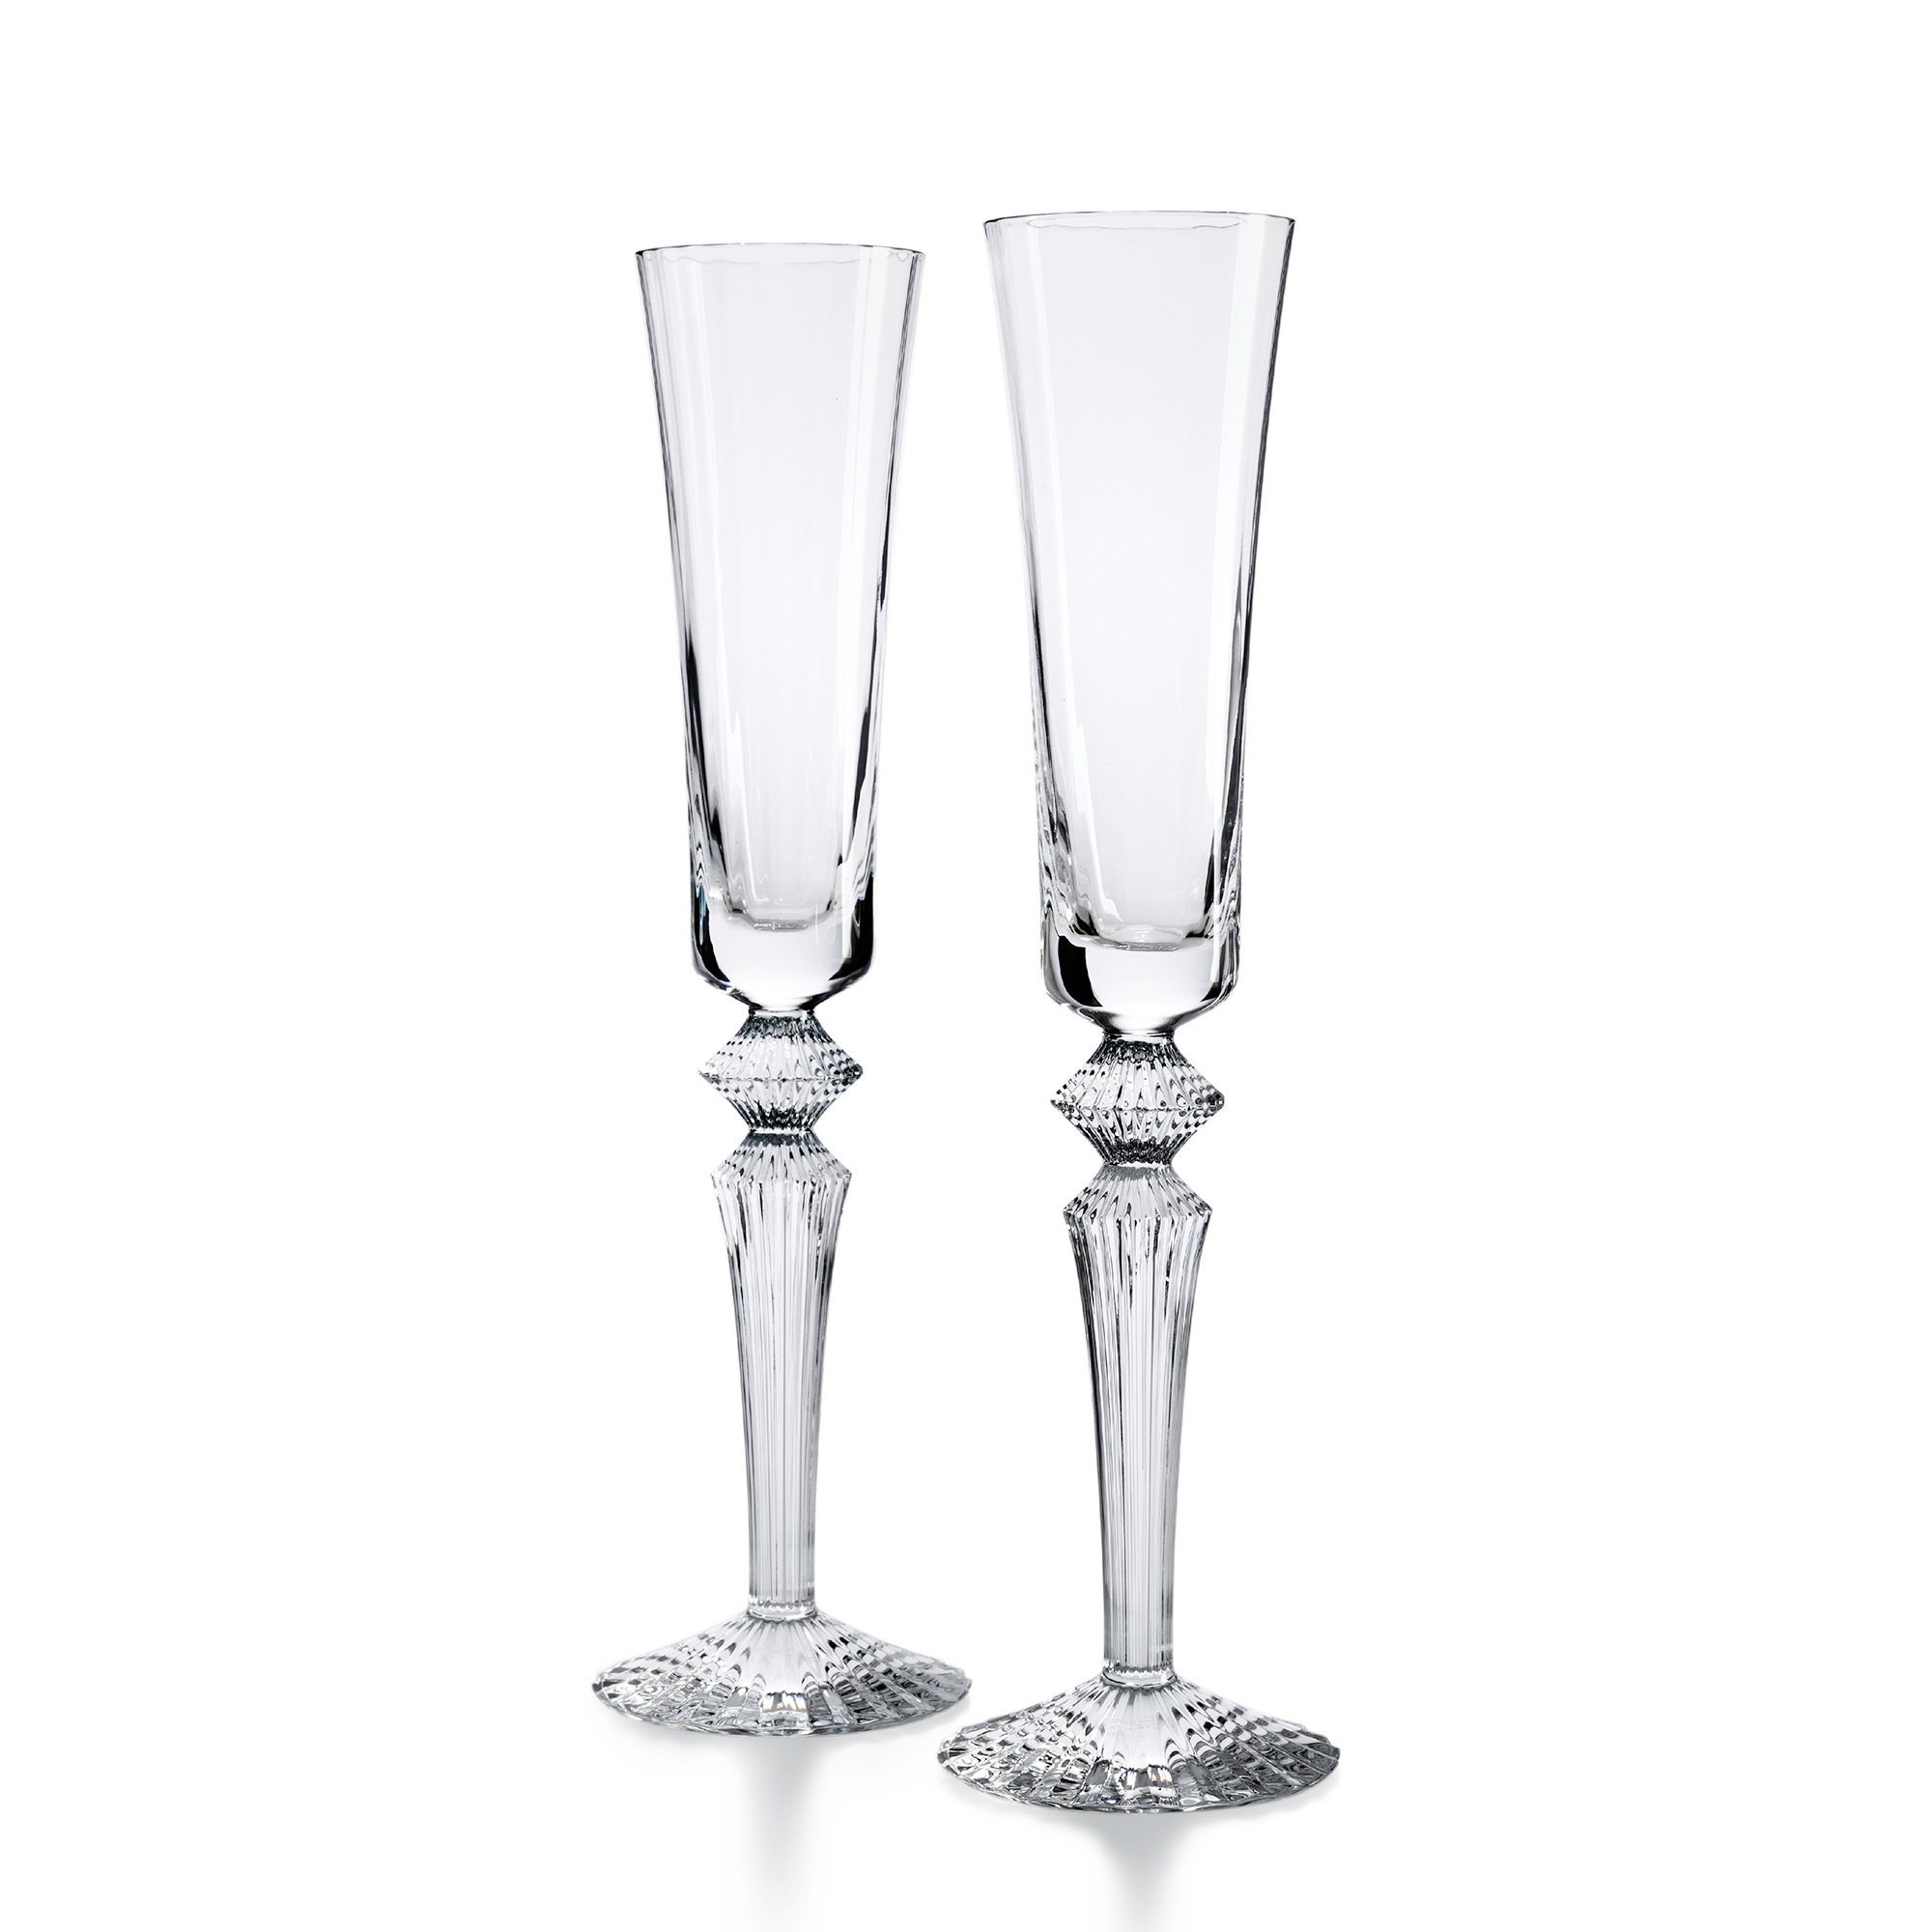 Baccarat Mille Nuits Flutissimo Flutes, Set of 2 Clear